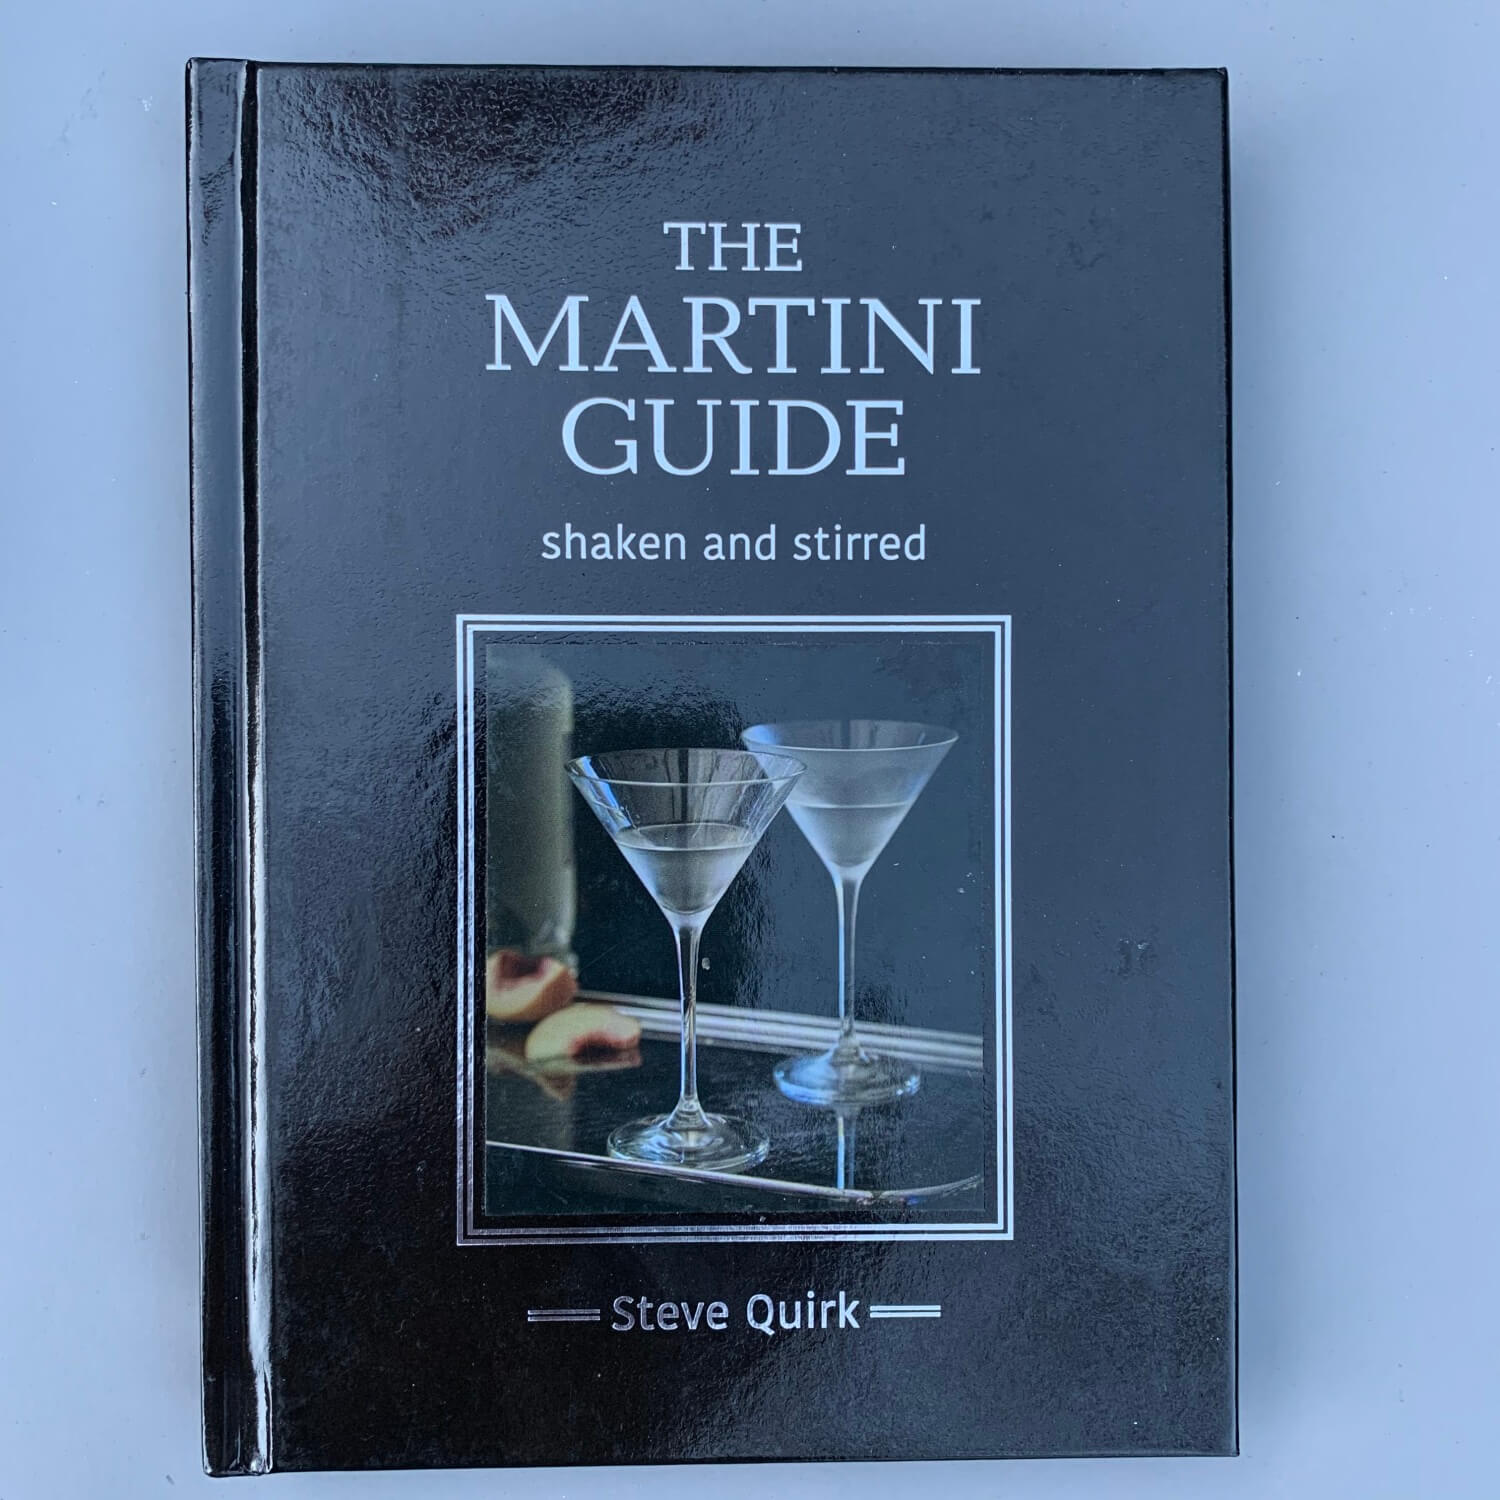 The Martini Guide